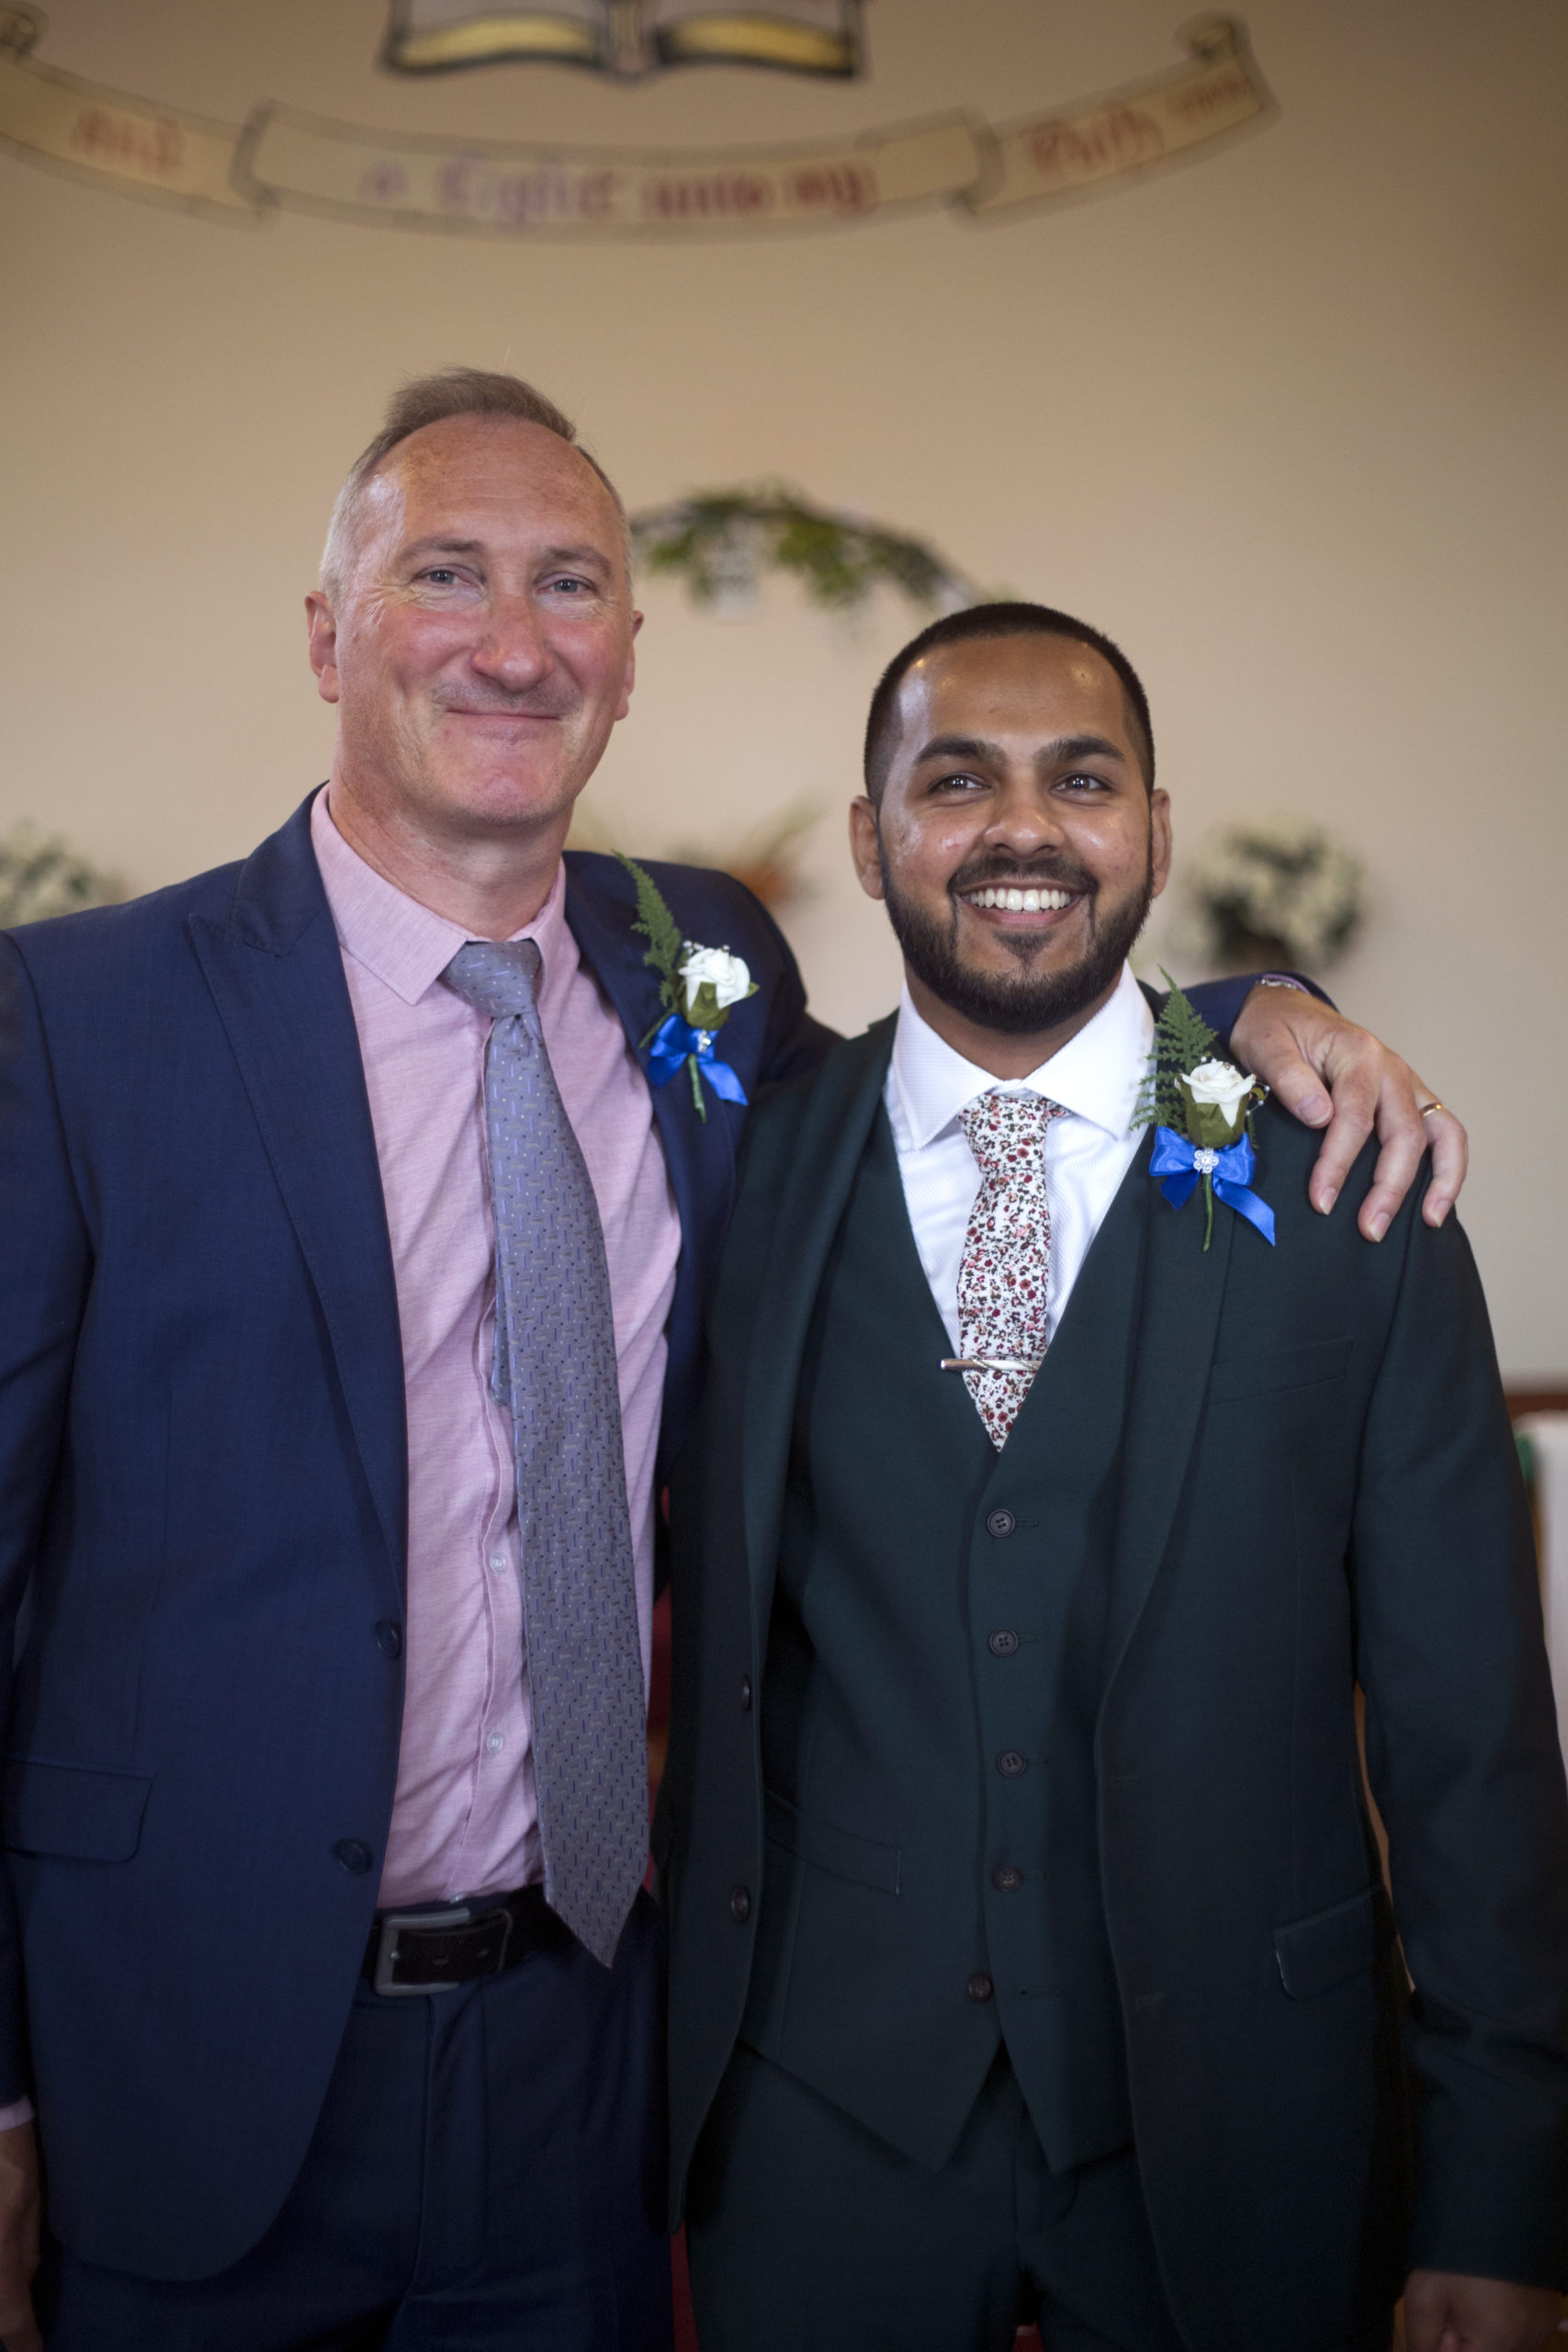 Groom and Father of the bride portrait micro wedding photographer Bristol